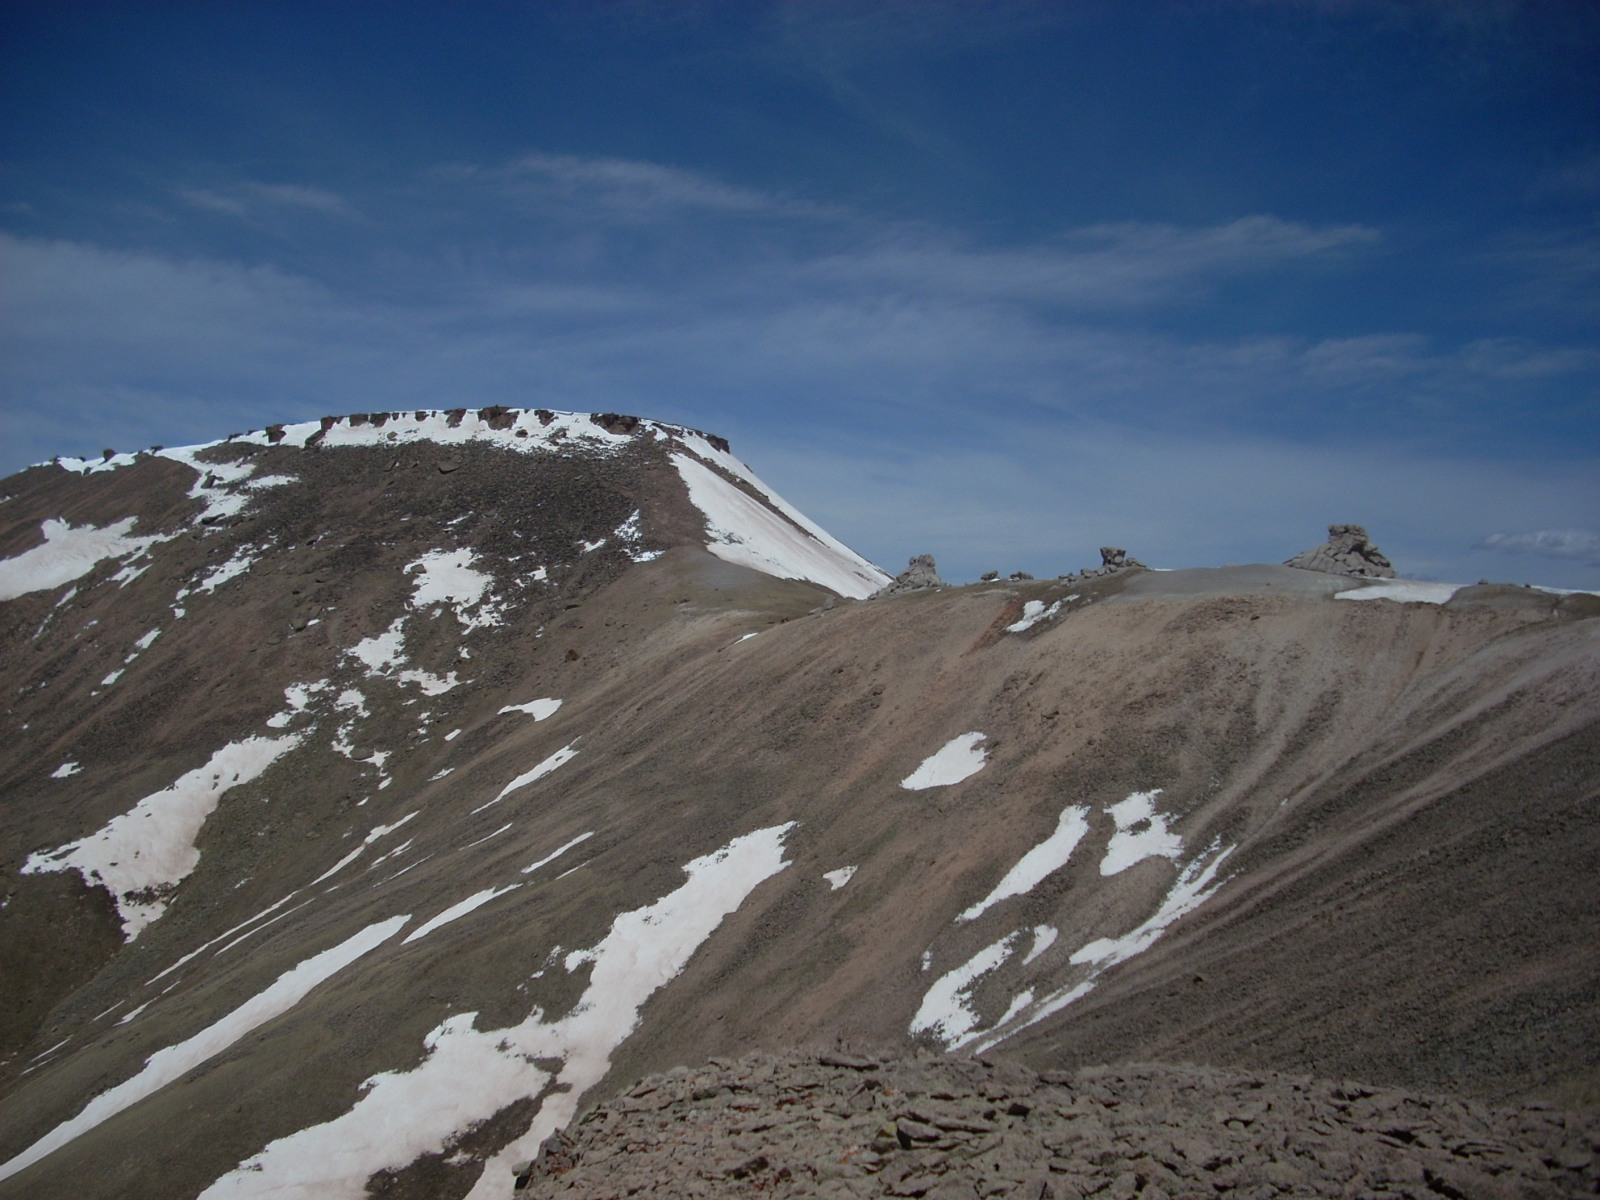 13,091 as viewed from its saddle with Crystal Peak